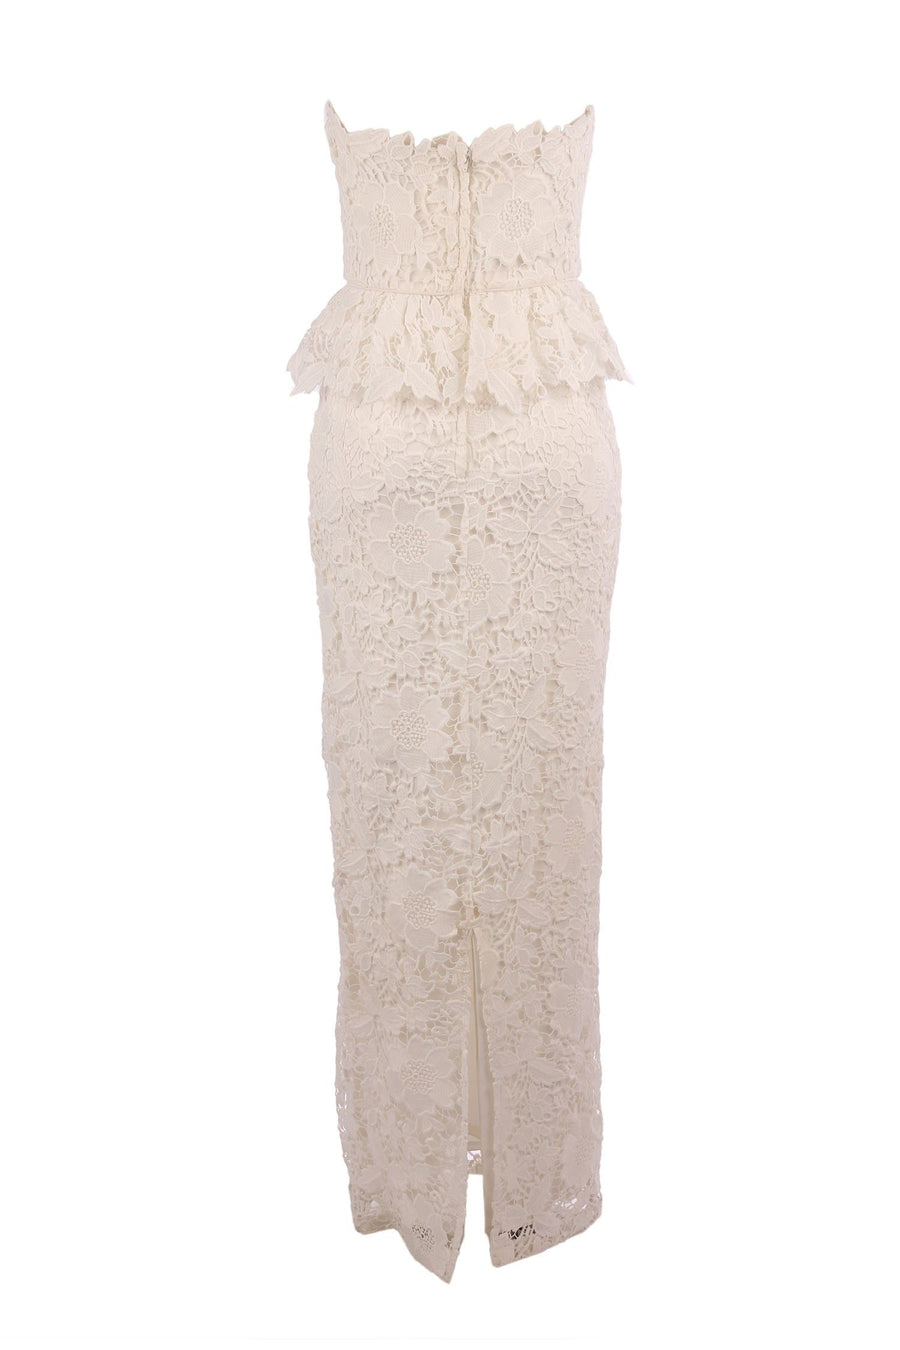 Prepose Gown in Ivory